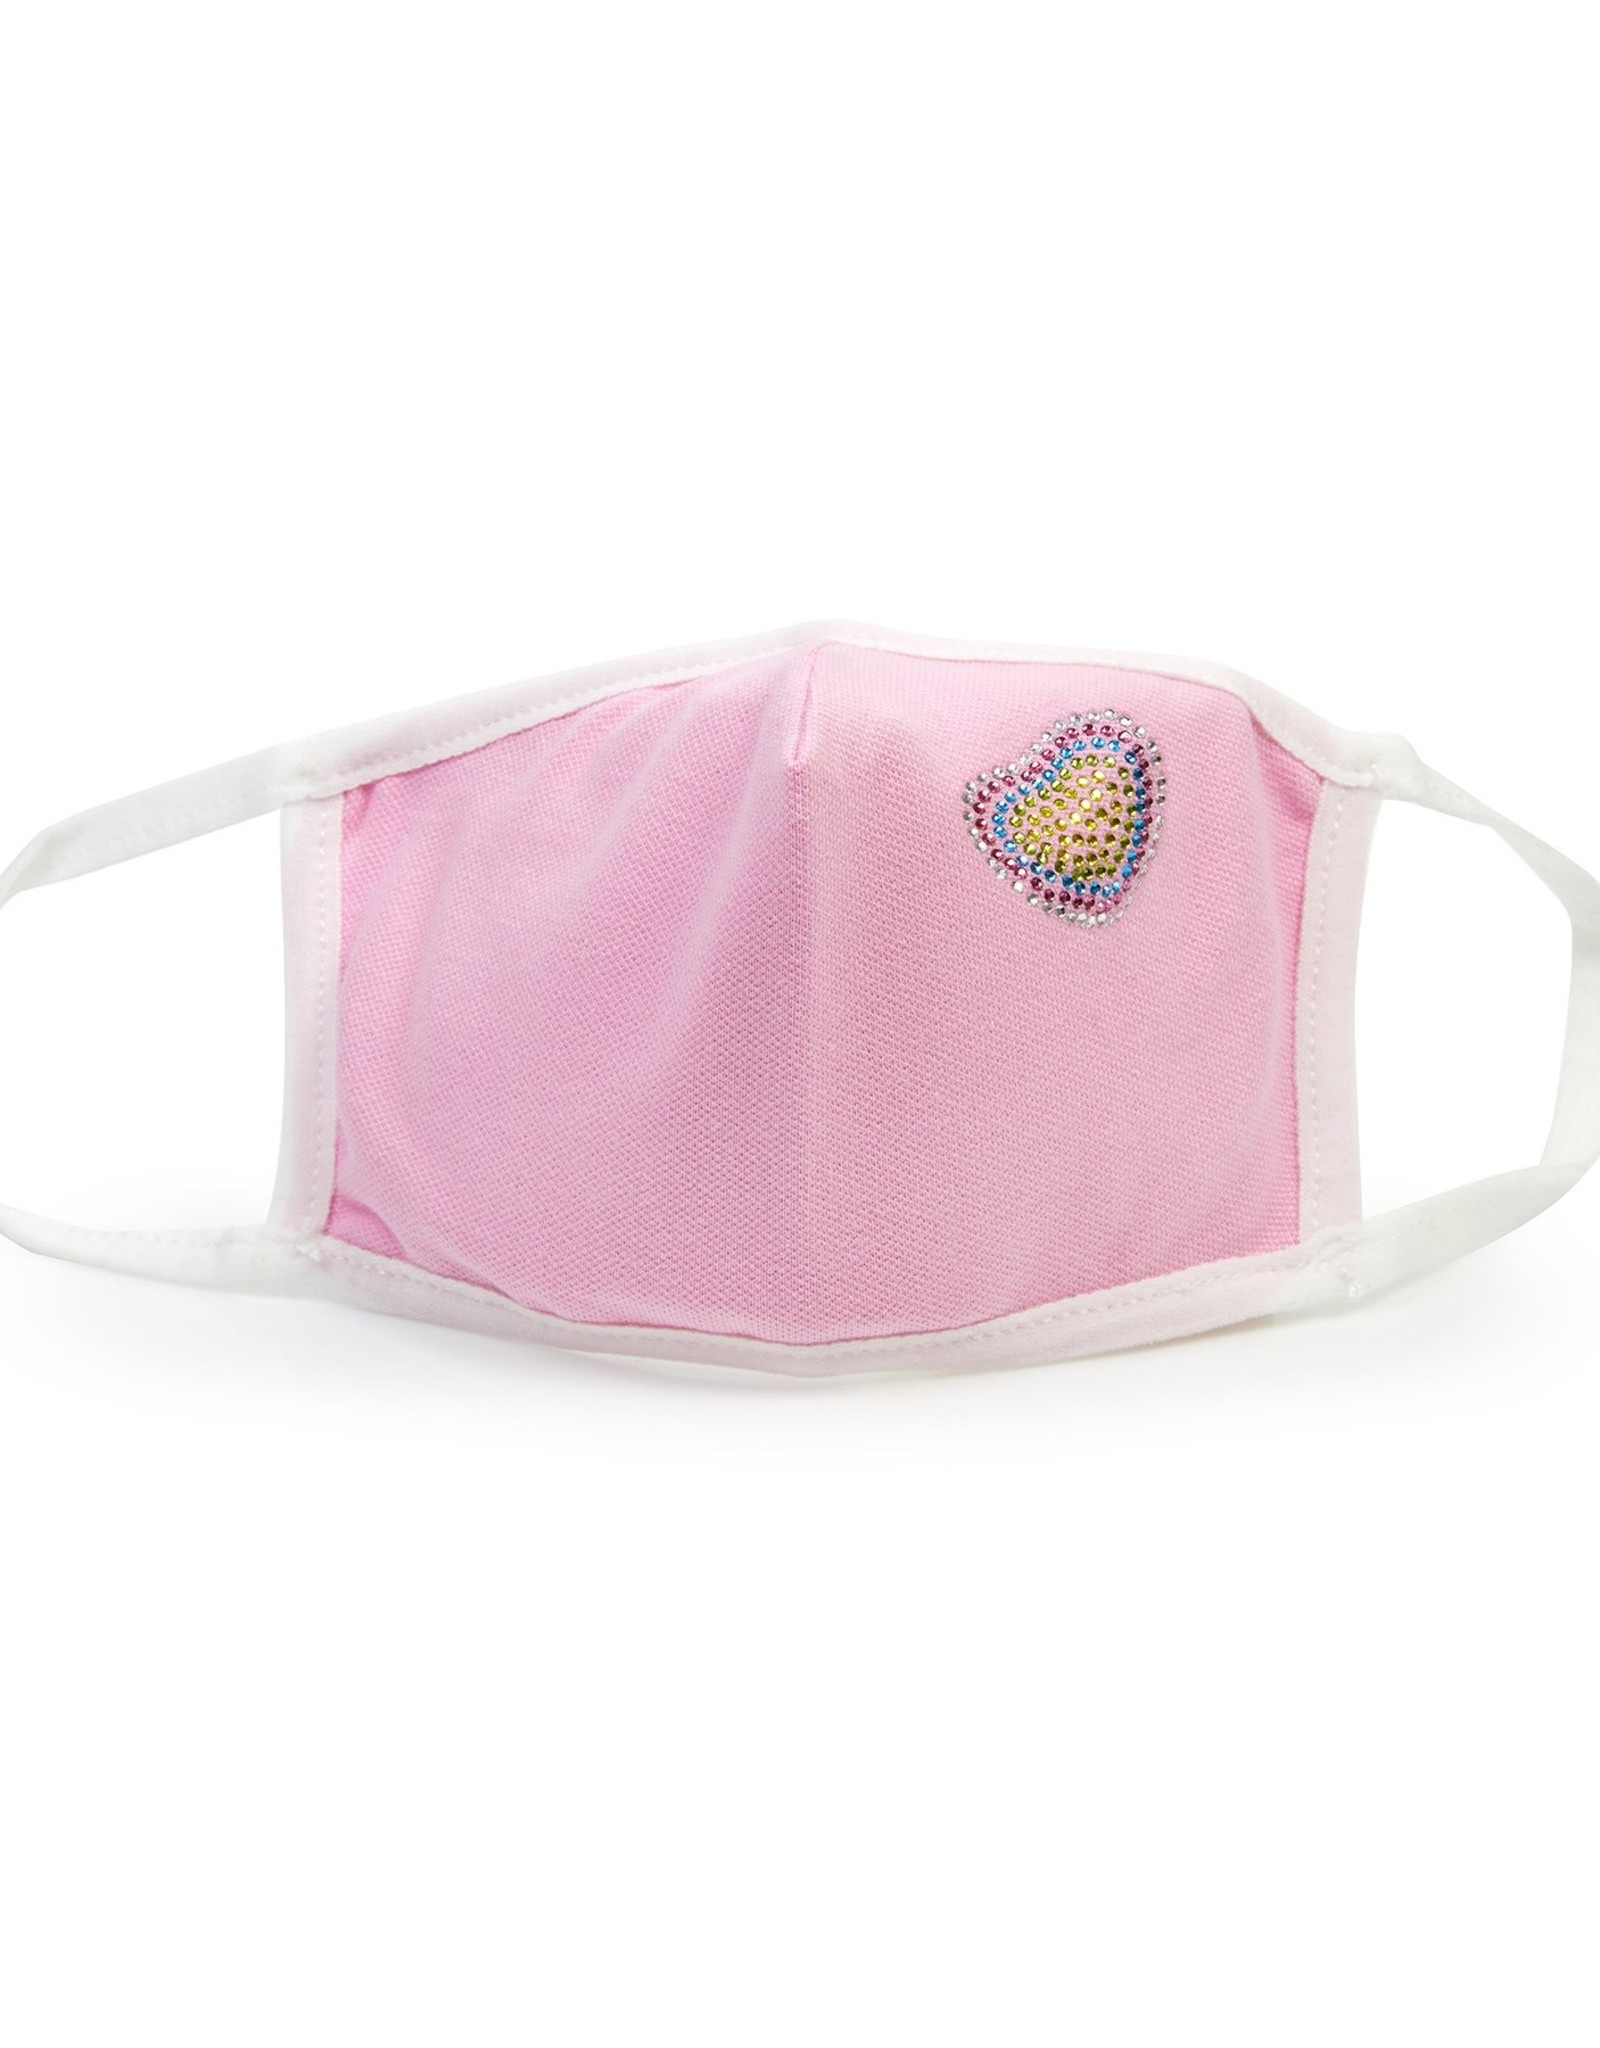 Bling20 Pretty N Pink Face Mask